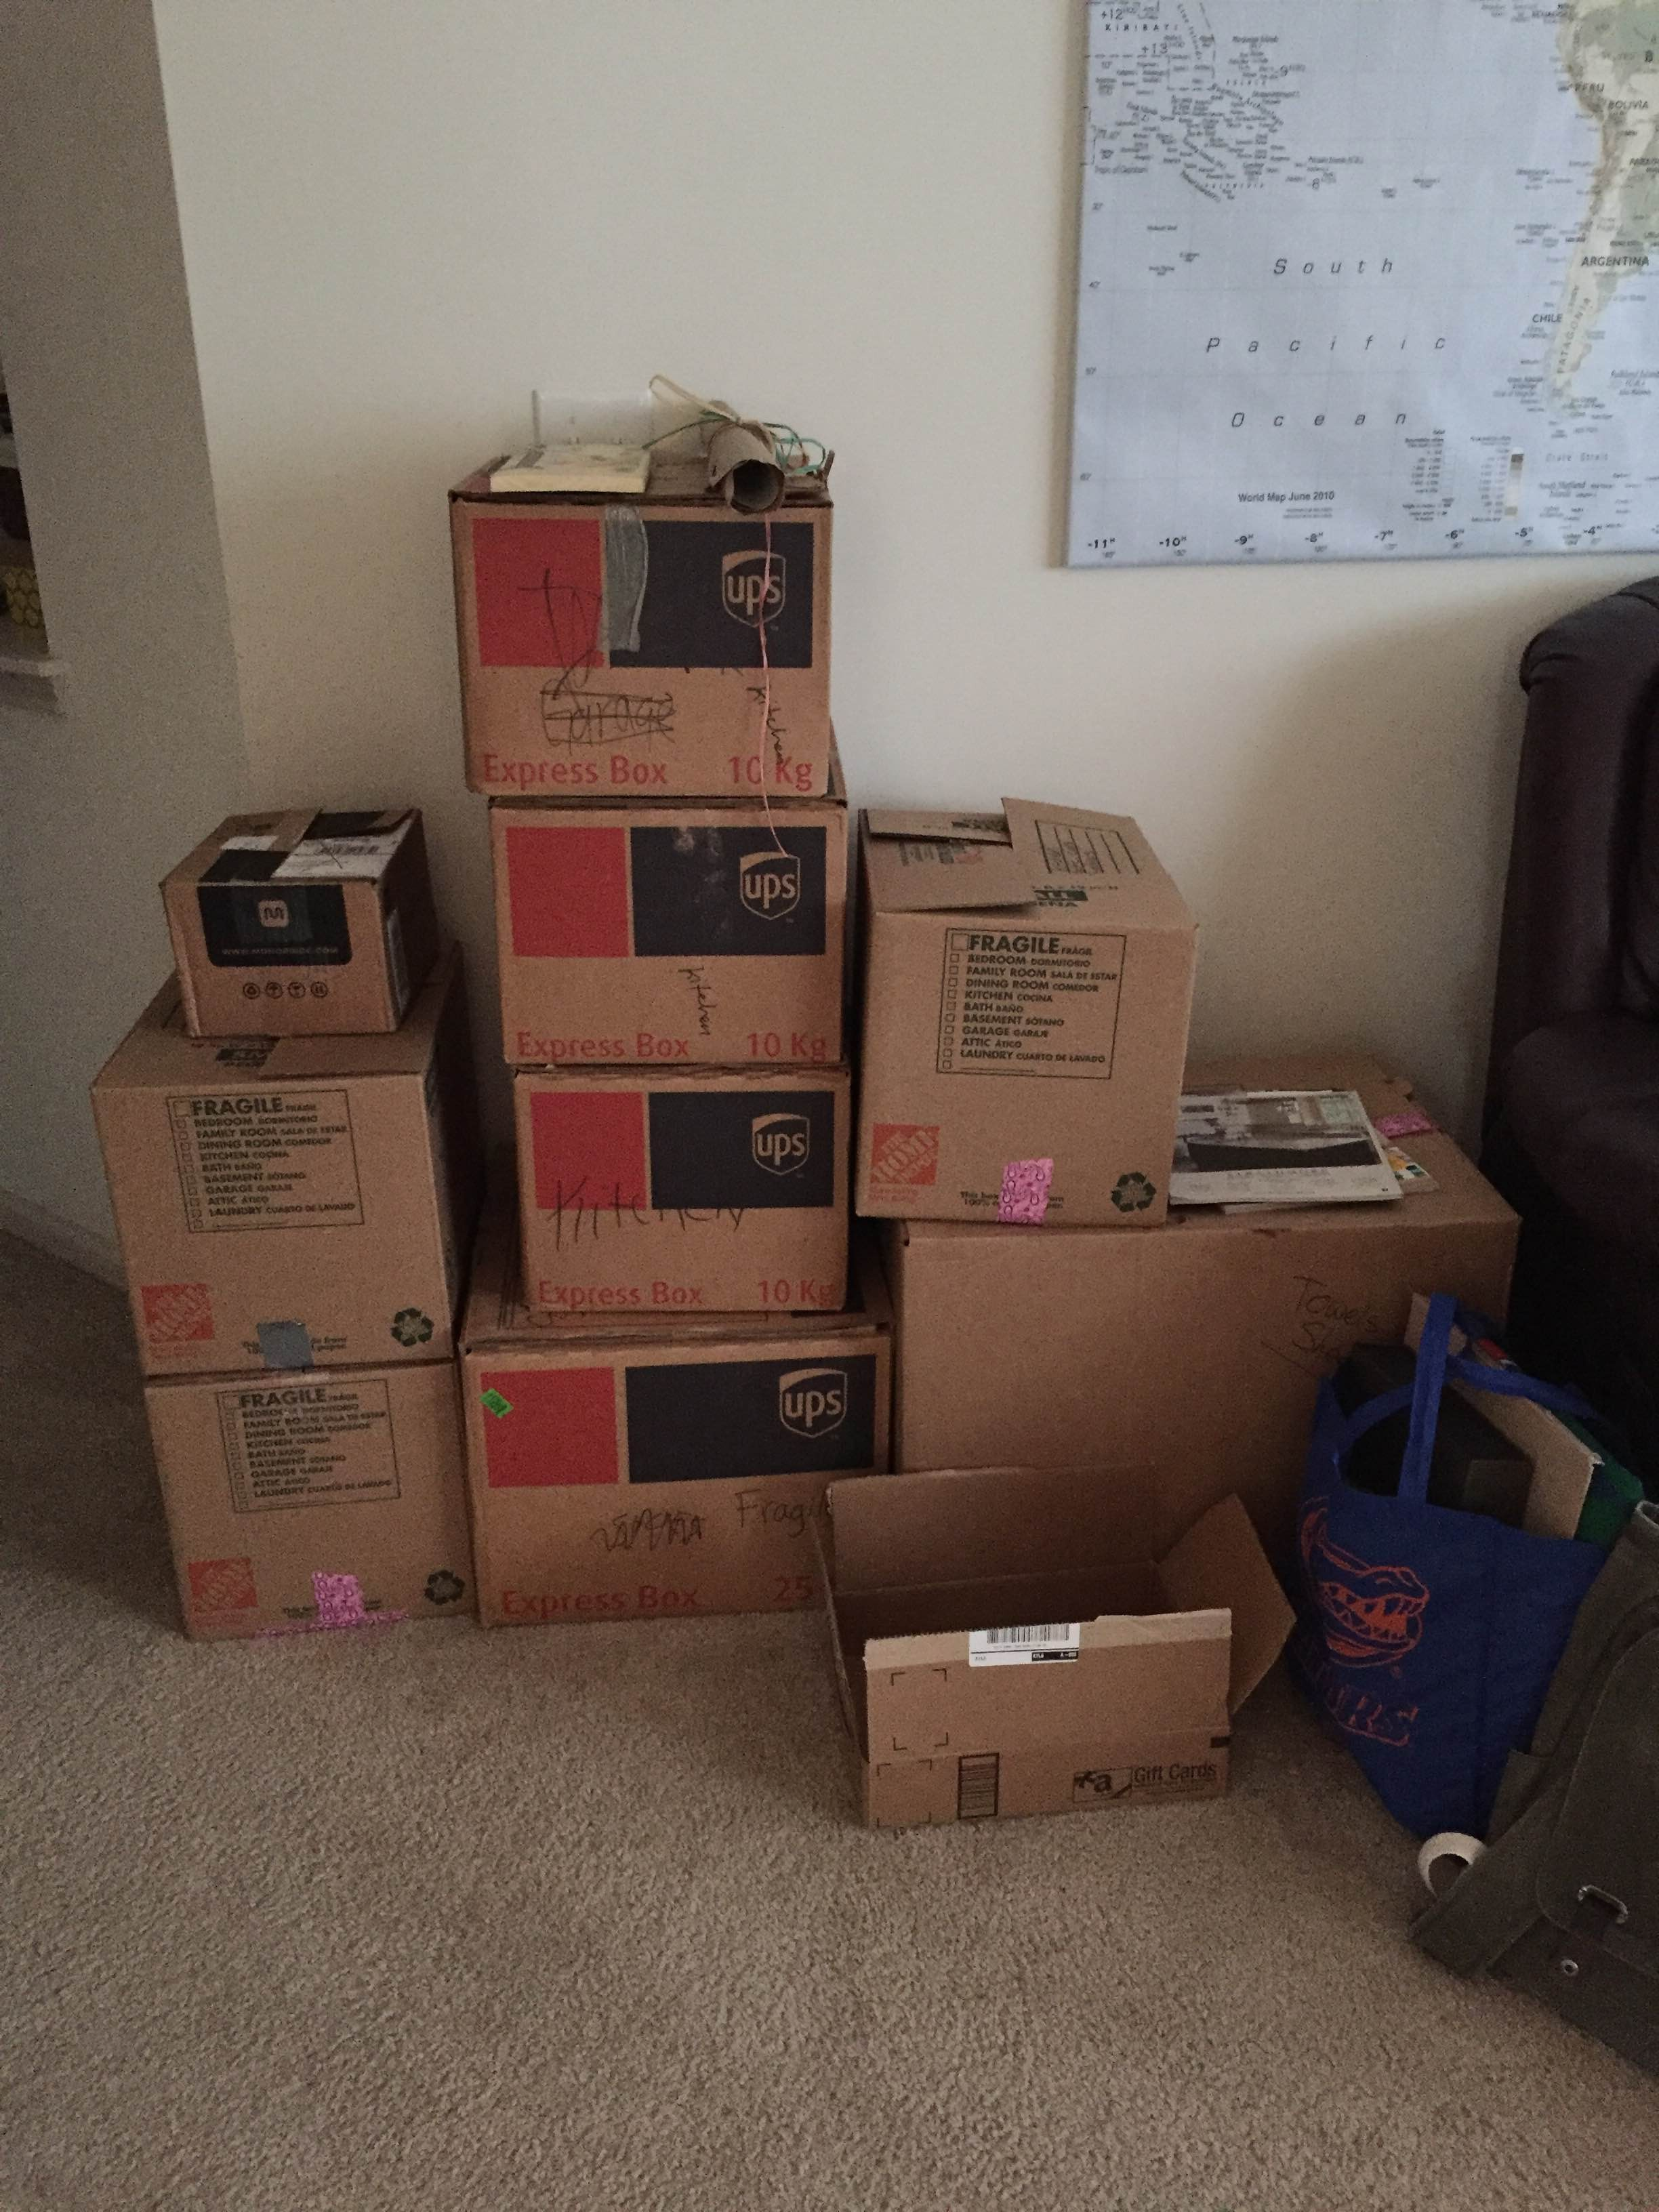 Our life was pretty much in boxes for over a month...